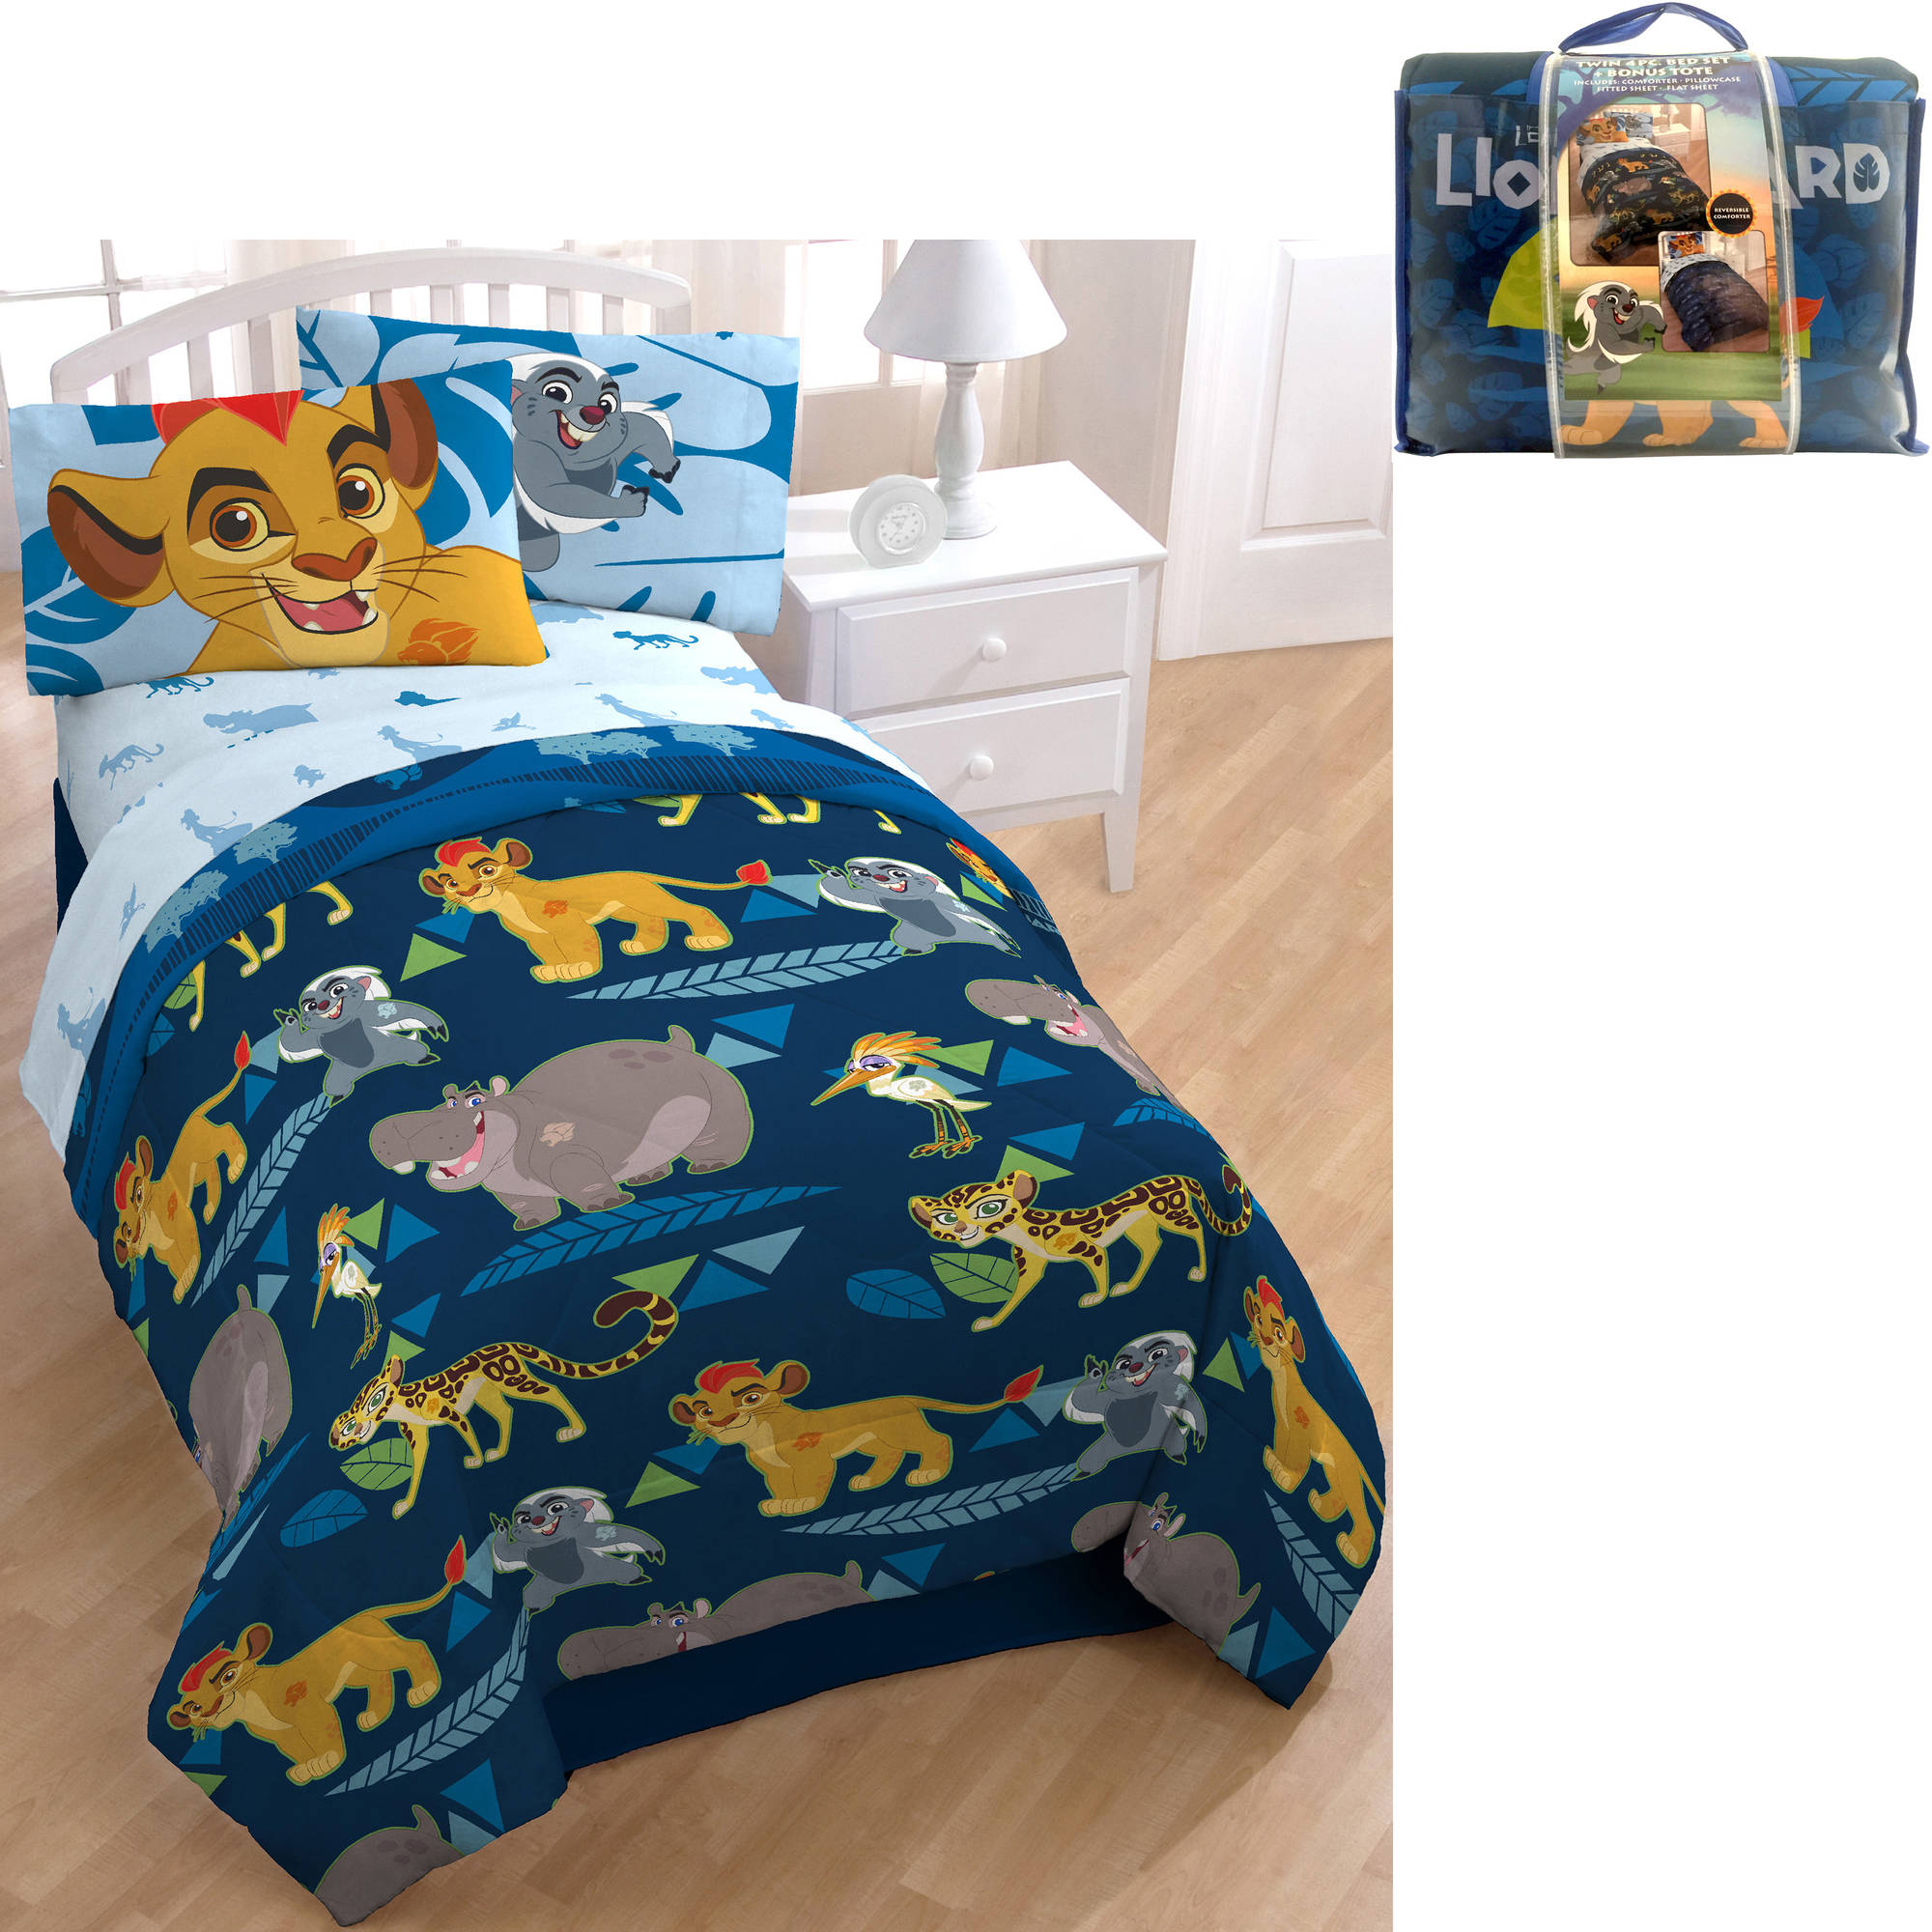 disney lion guard bed in a bag 5 piece twin bedding set with bonus tote